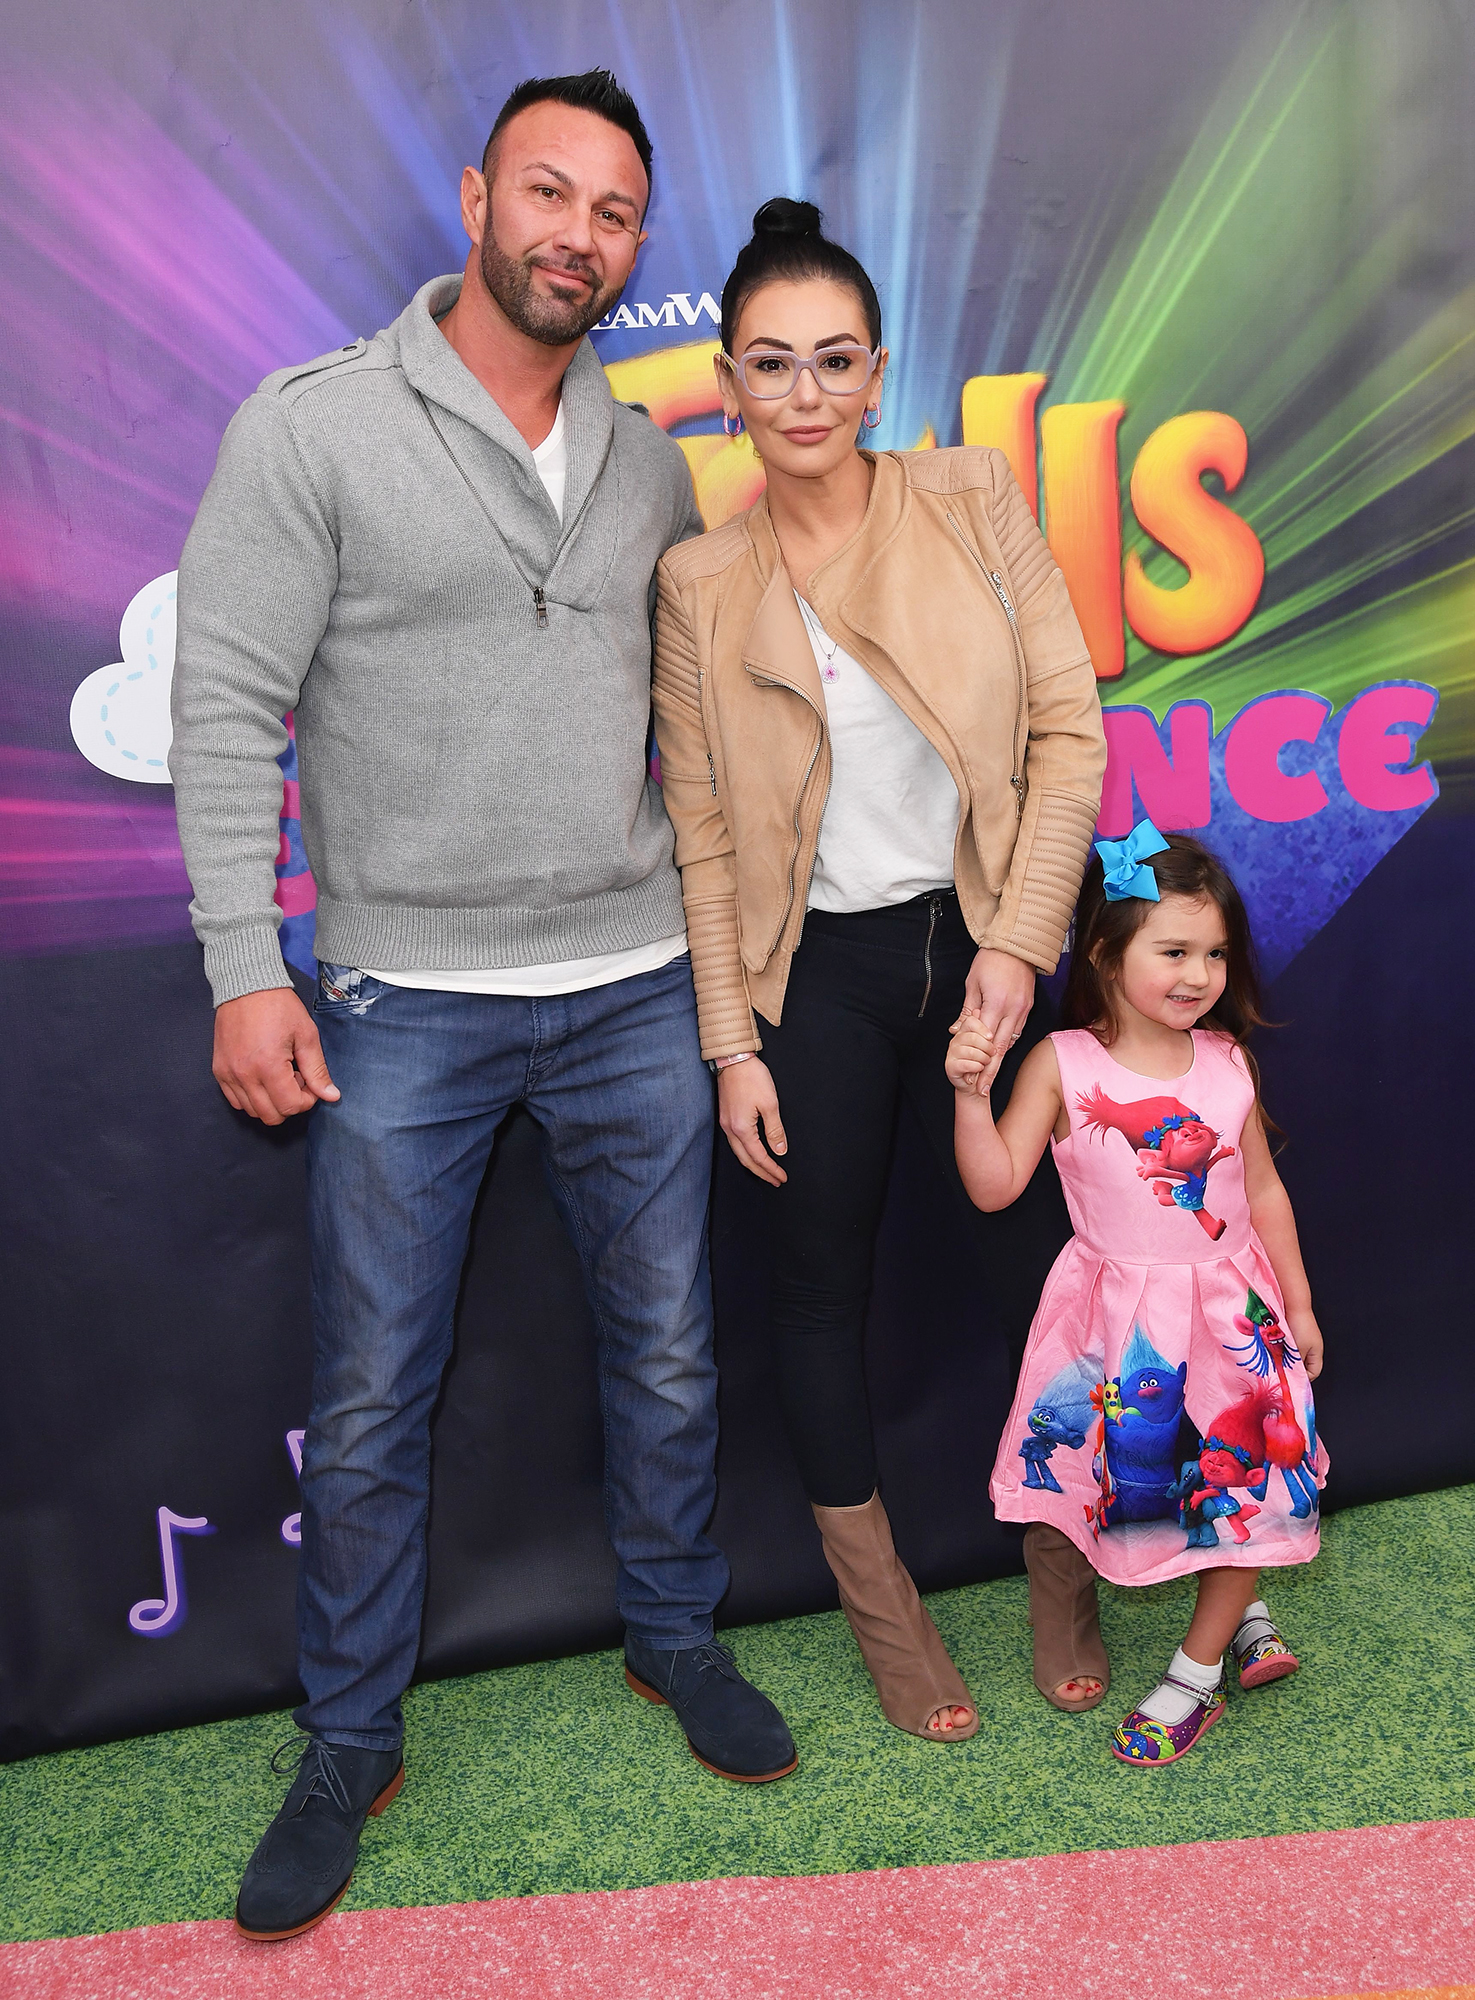 JWoww and Roger Mathews Reunite for Easter Train Ride With Kids - Roger Mathews, Jenni Farley and Meilani Mathews attend DreamWorks Trolls The Experience on November 14, 2018 in New York City.